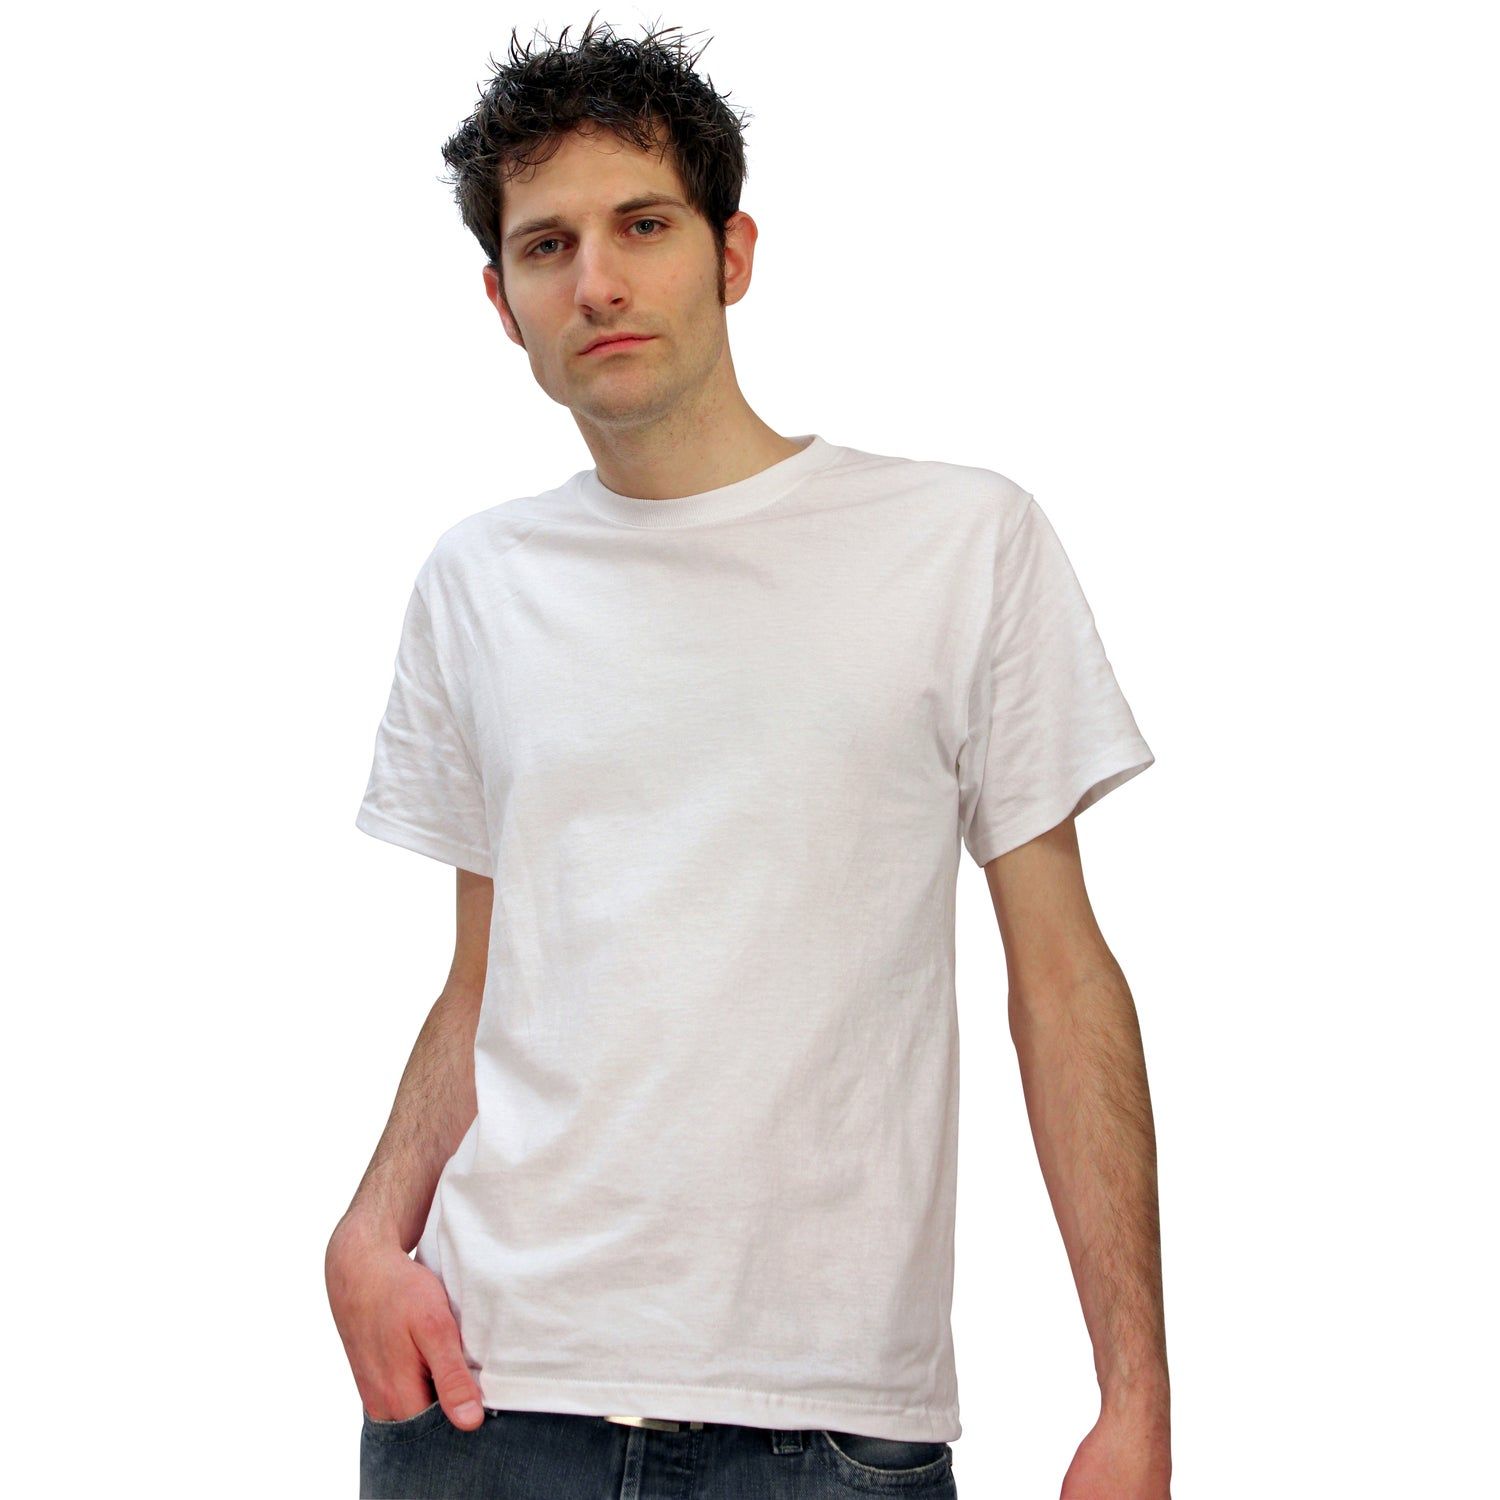 Fruit of the loom heavy cotton t shirt white 100 for Fruits of the loom t shirts